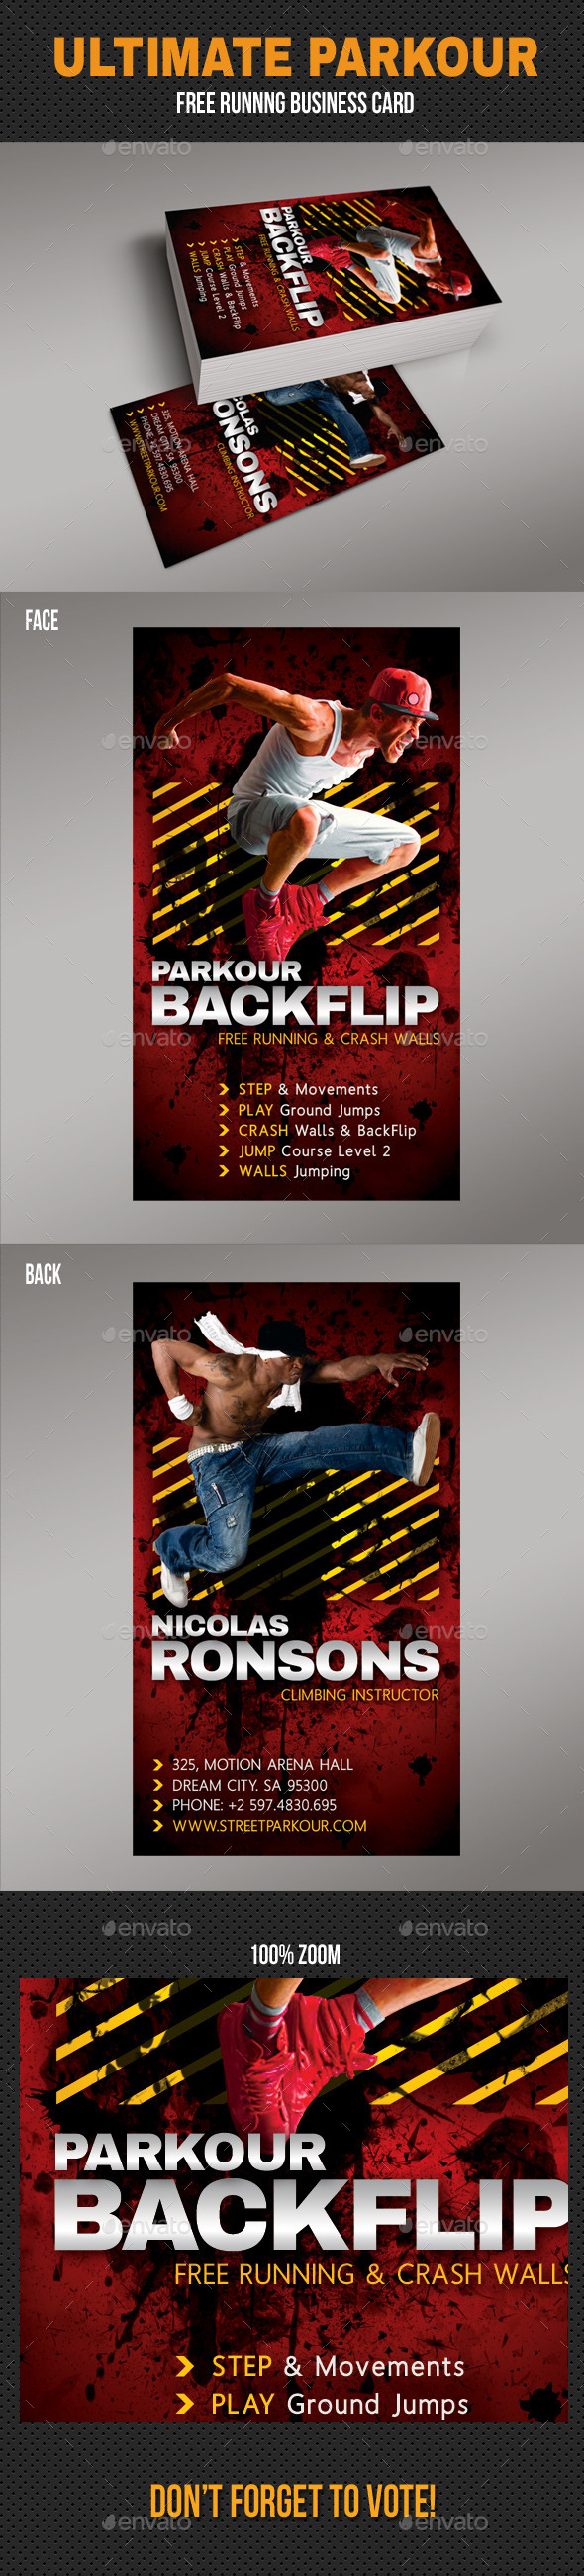 Ultimate Parkour Free Running Business Card V2 - Business Cards Print Templates